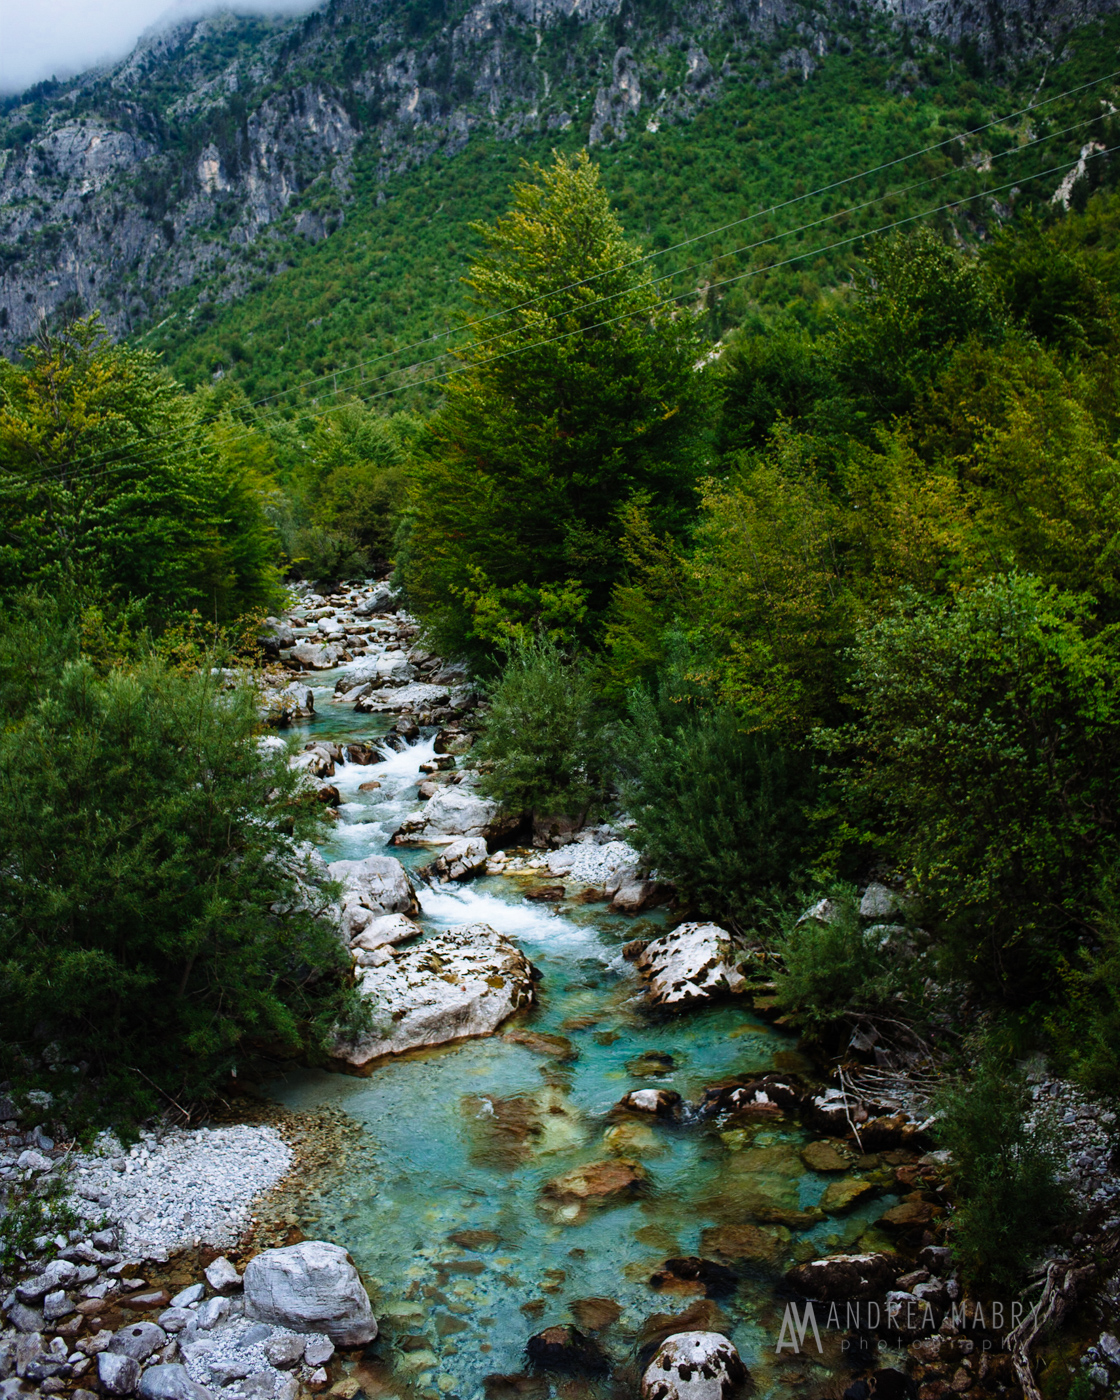 Every body of water we saw in Albania was some crazy variation of blue-green.